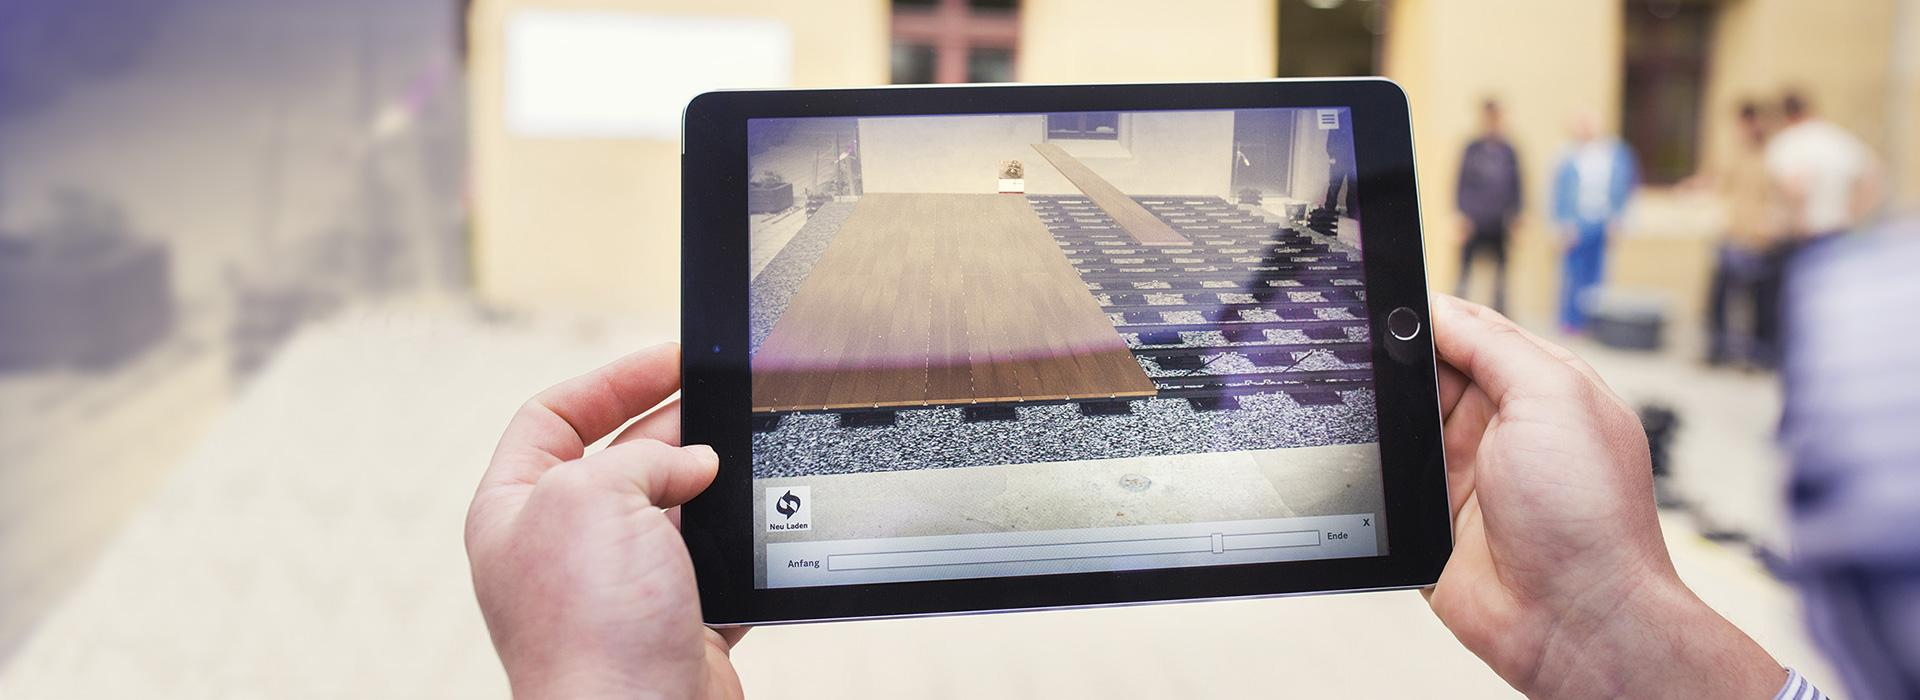 3D-Planung am Tablet mit Augmented Reality